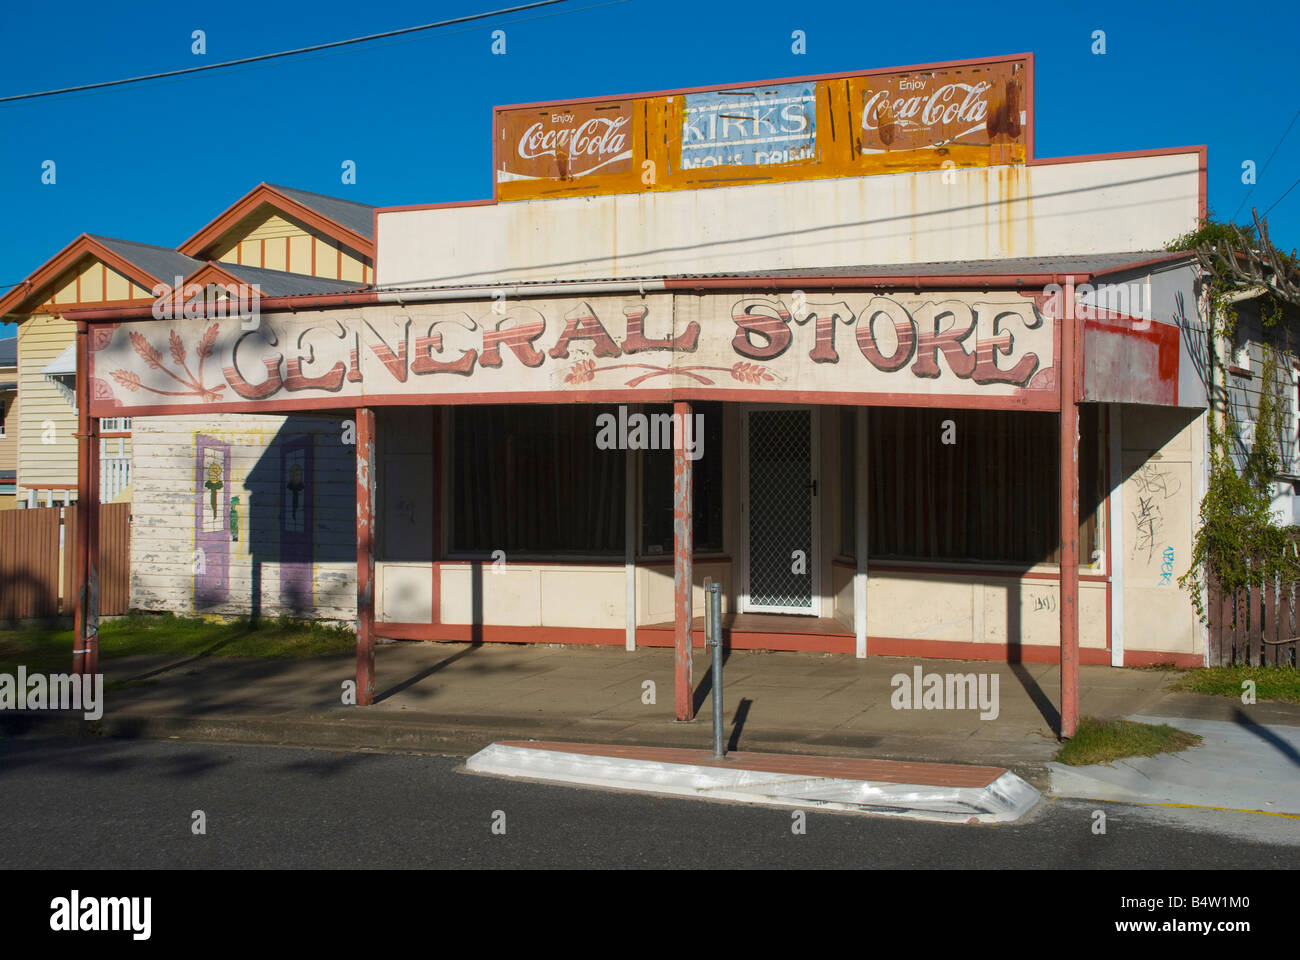 An faded old storefront on a disused derelict shop in Brisbane Australia - Stock Image